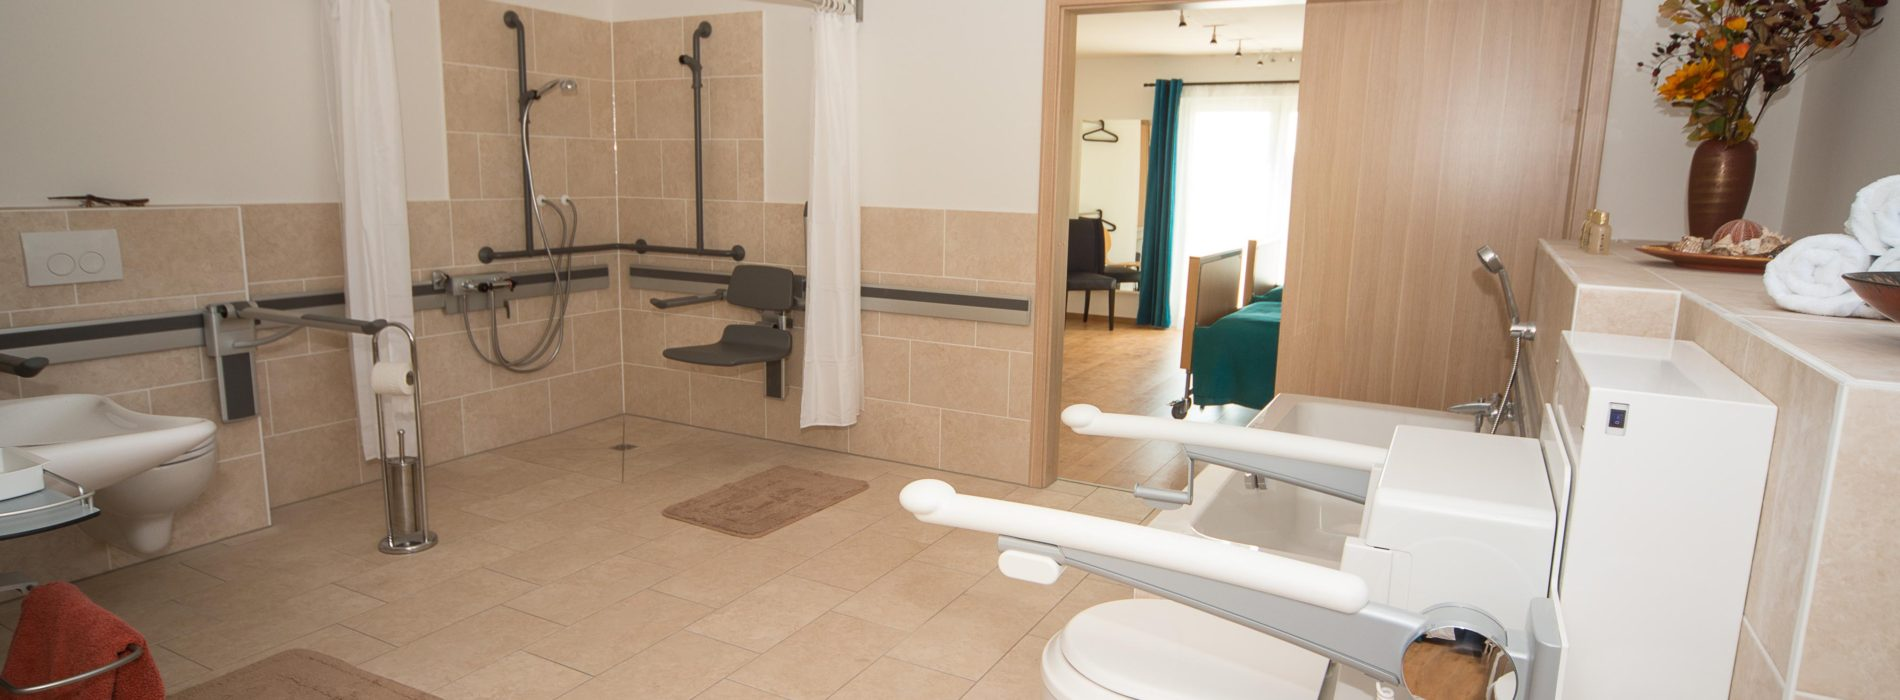 Simple ways to make your bathroom accessible